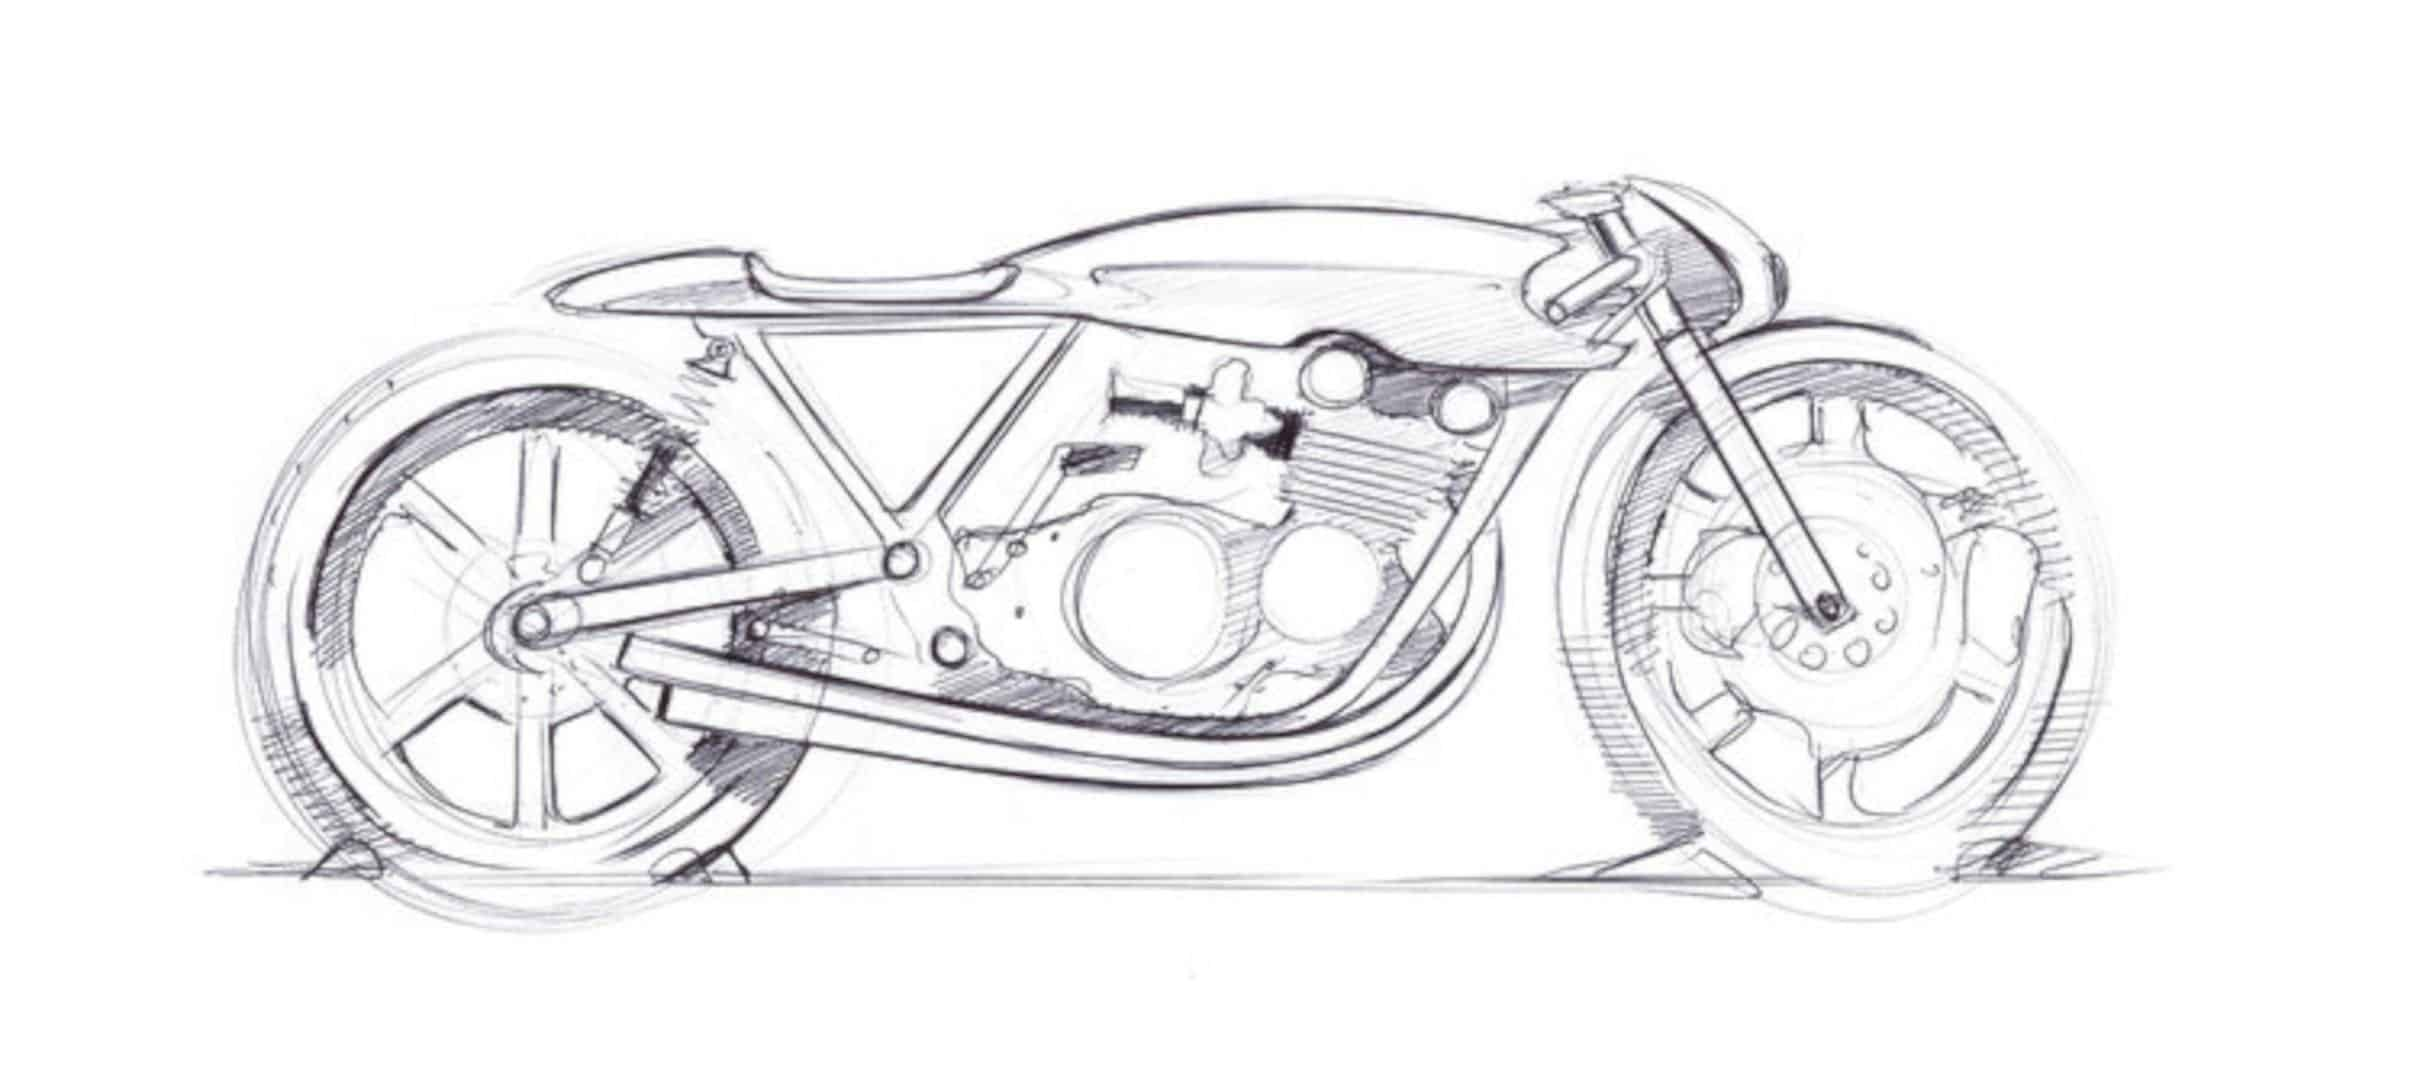 The Type 11 Concept By Auto Fabrica 10